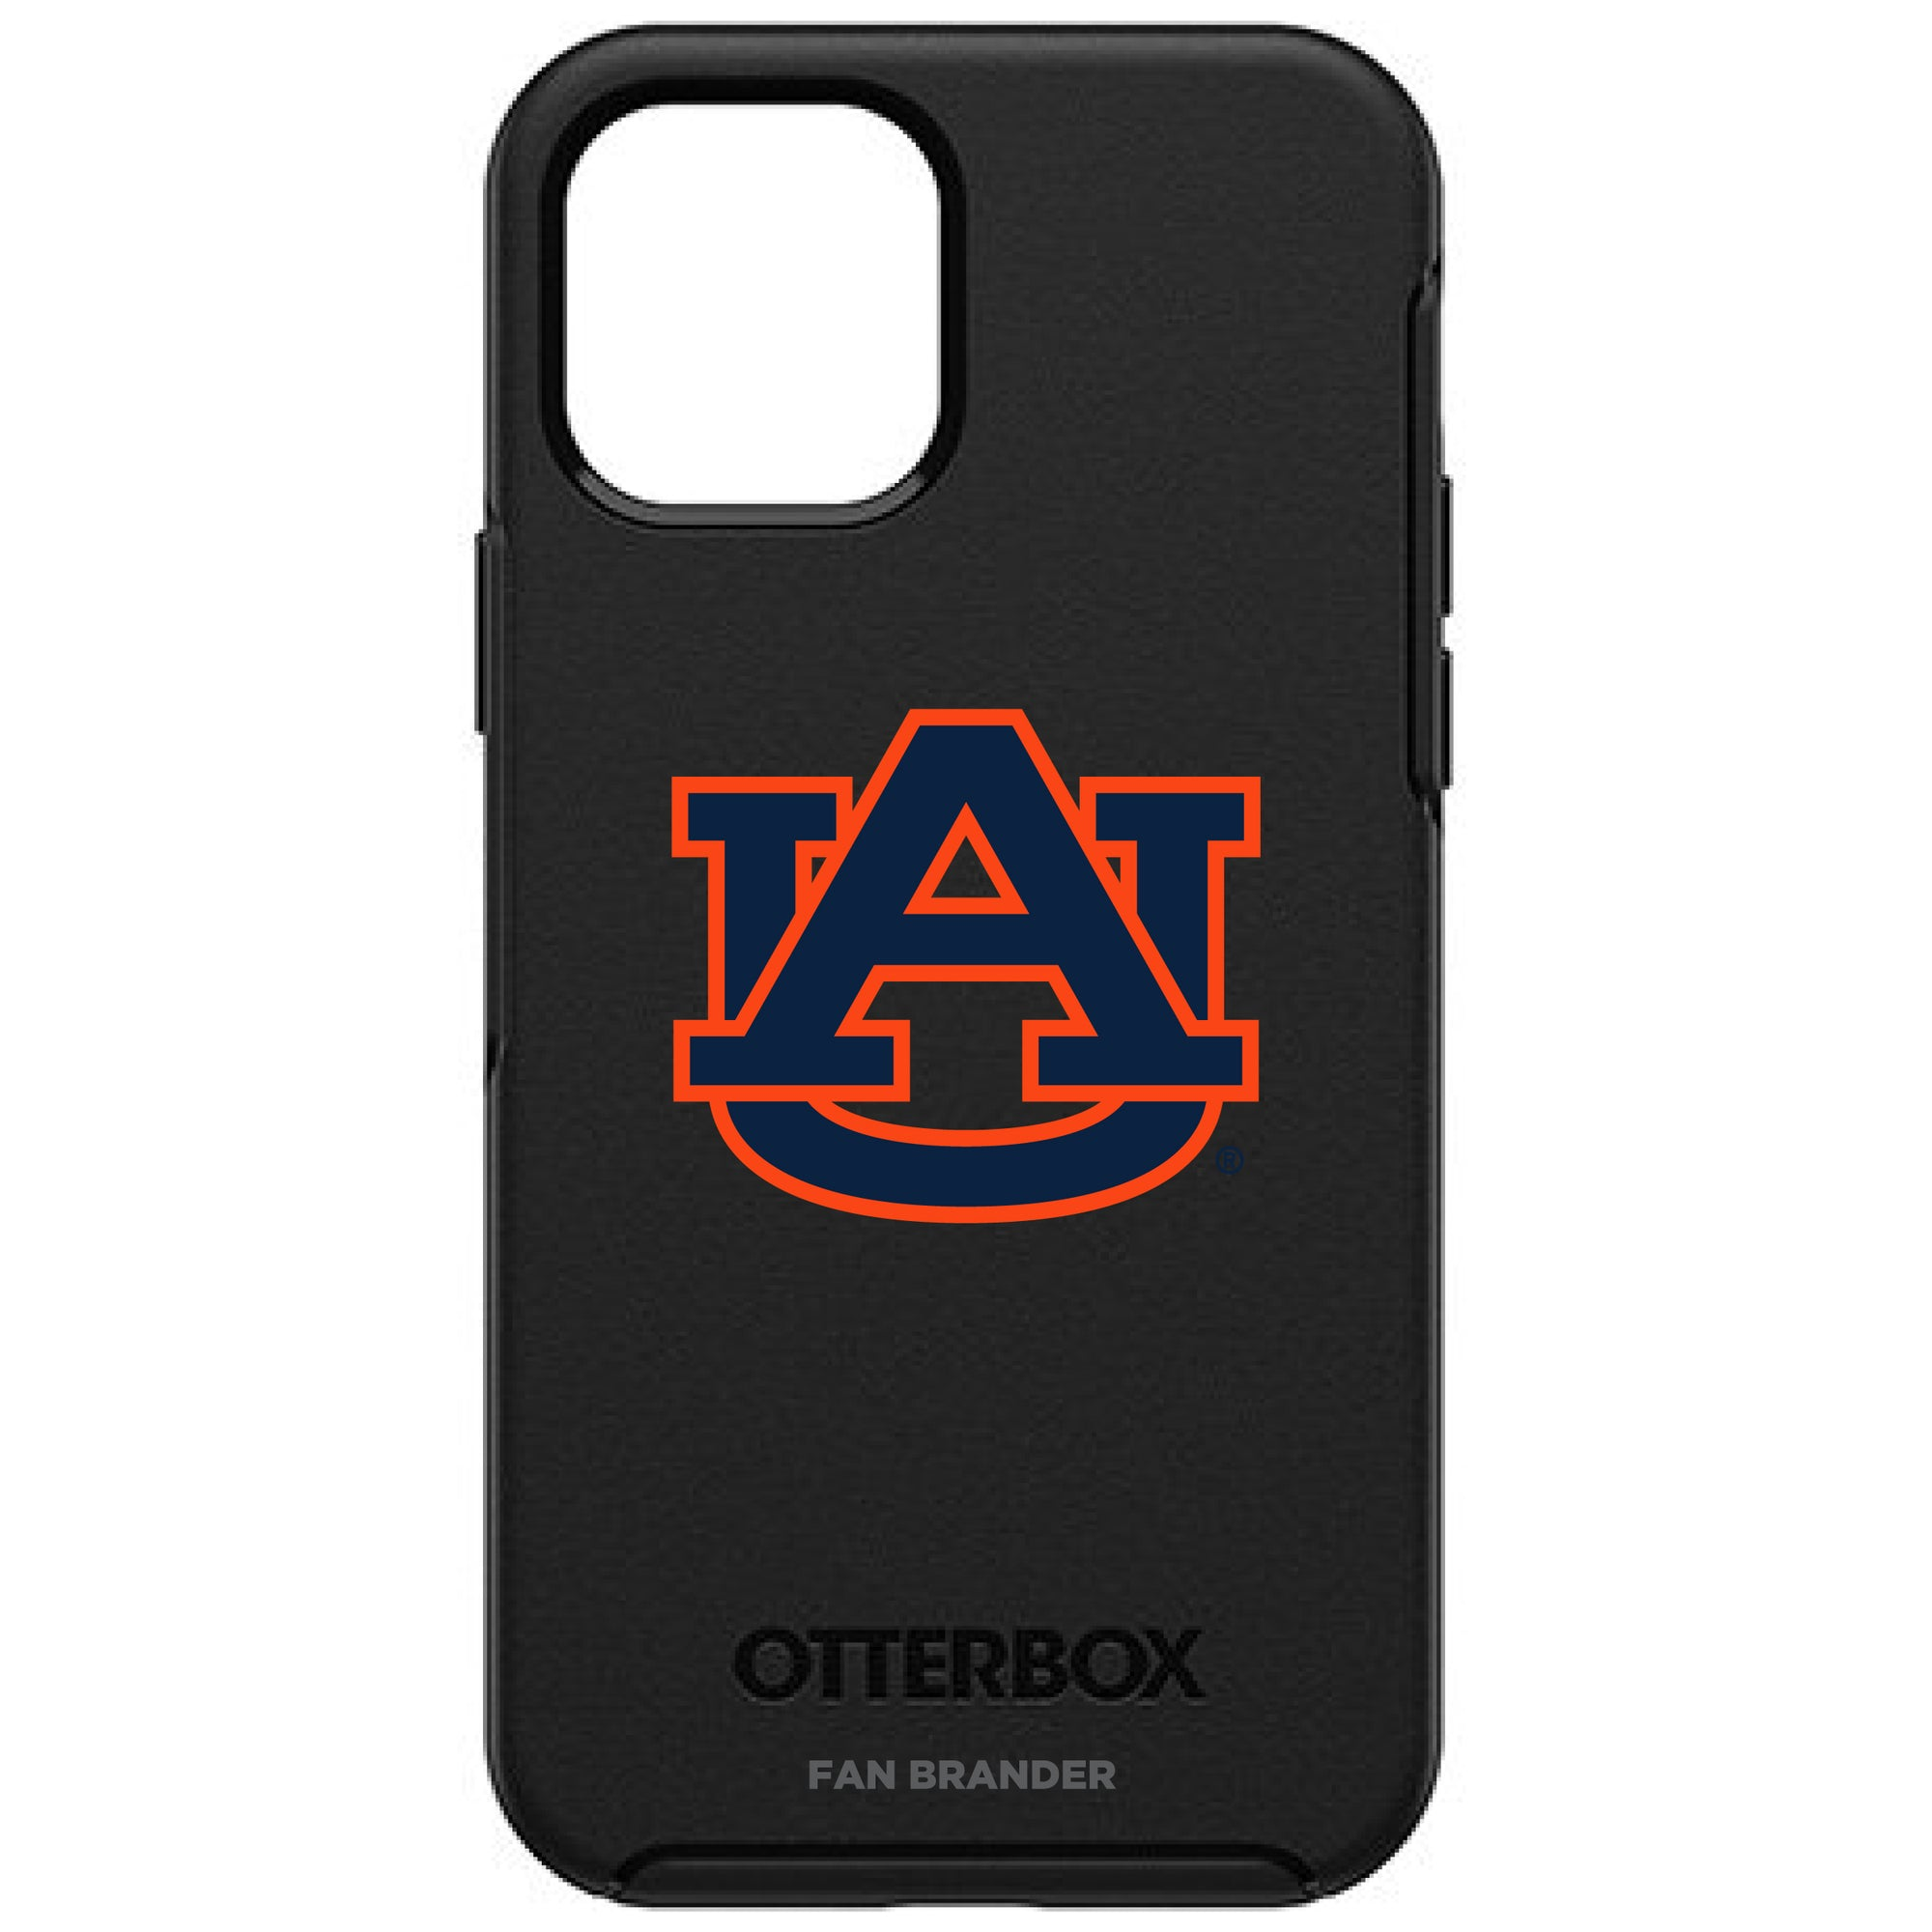 Auburn Tigers Otterbox iPhone 12 mini Symmetry Case